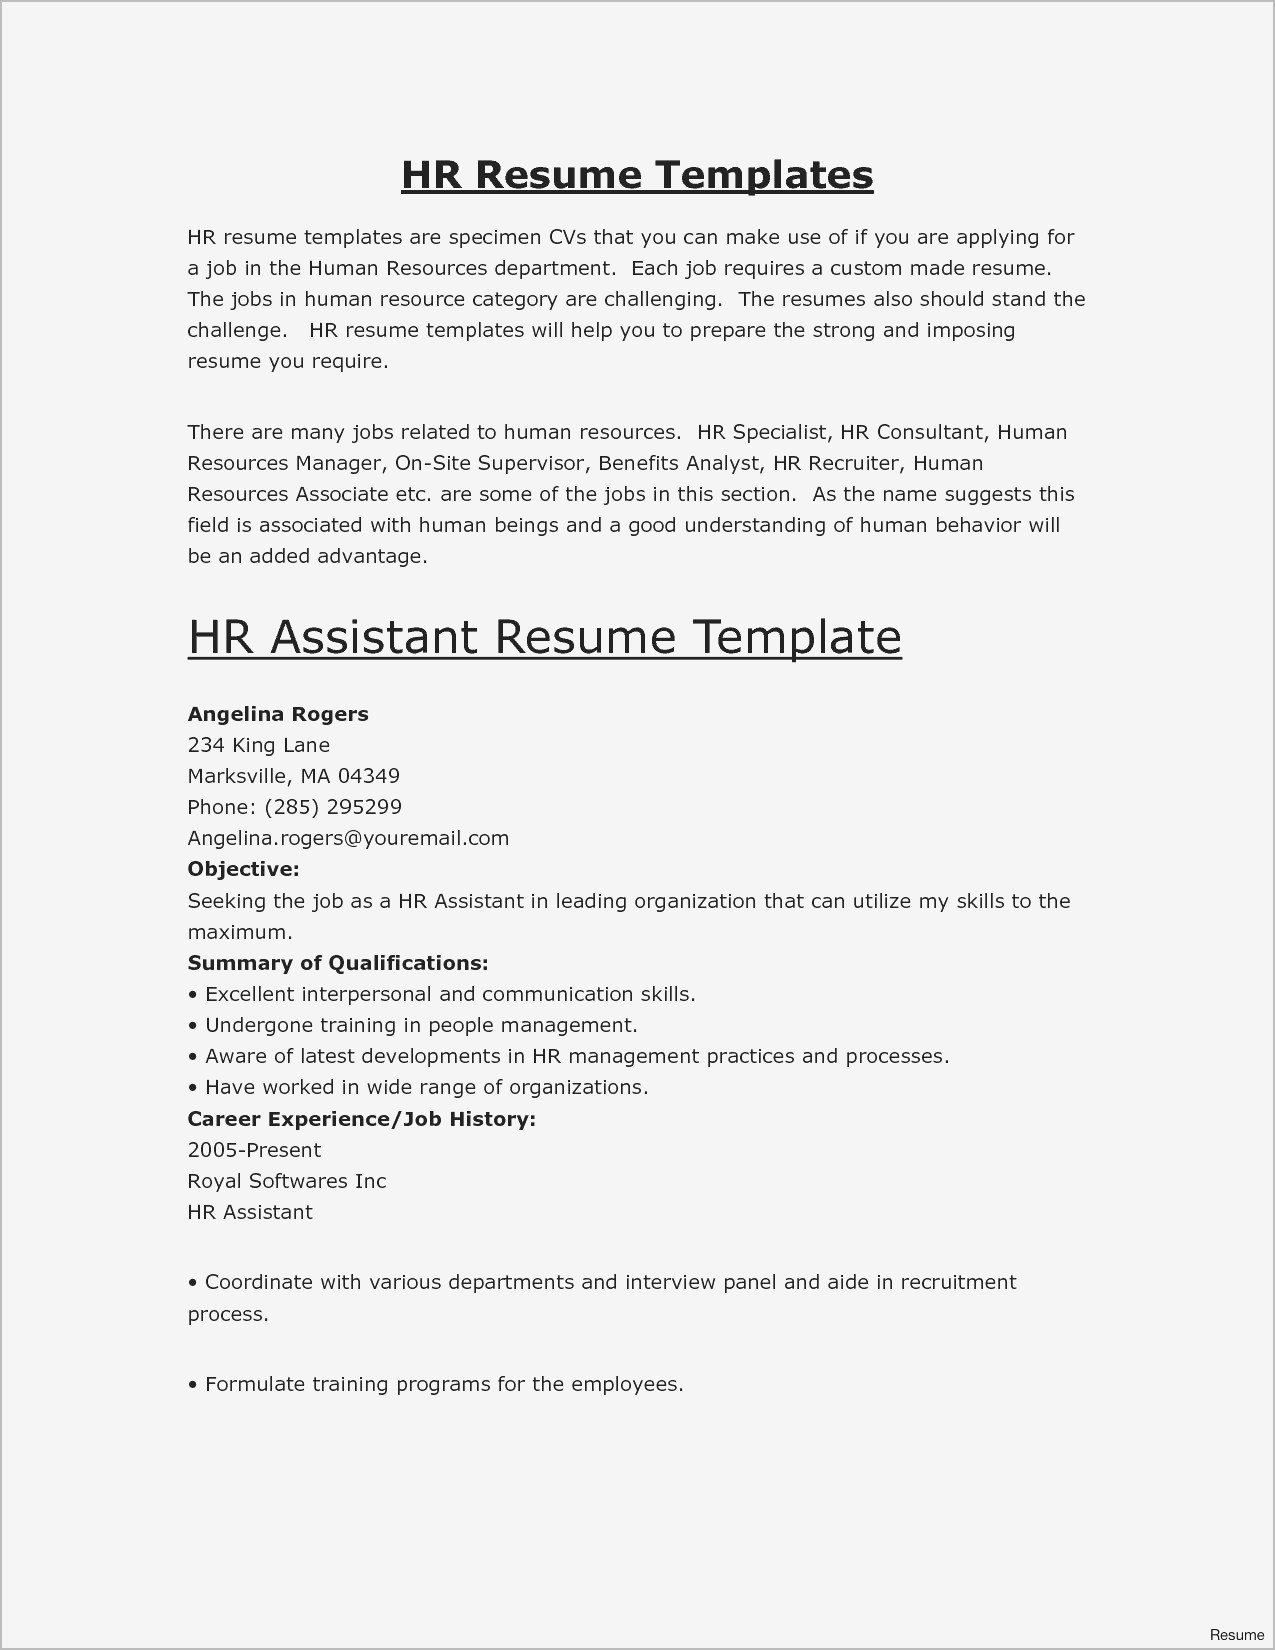 sorority recruitment resume template example-How to Type Resume Luxury Sample Sales Resumes Awesome Awesome How Can I Do A Resume 6-a